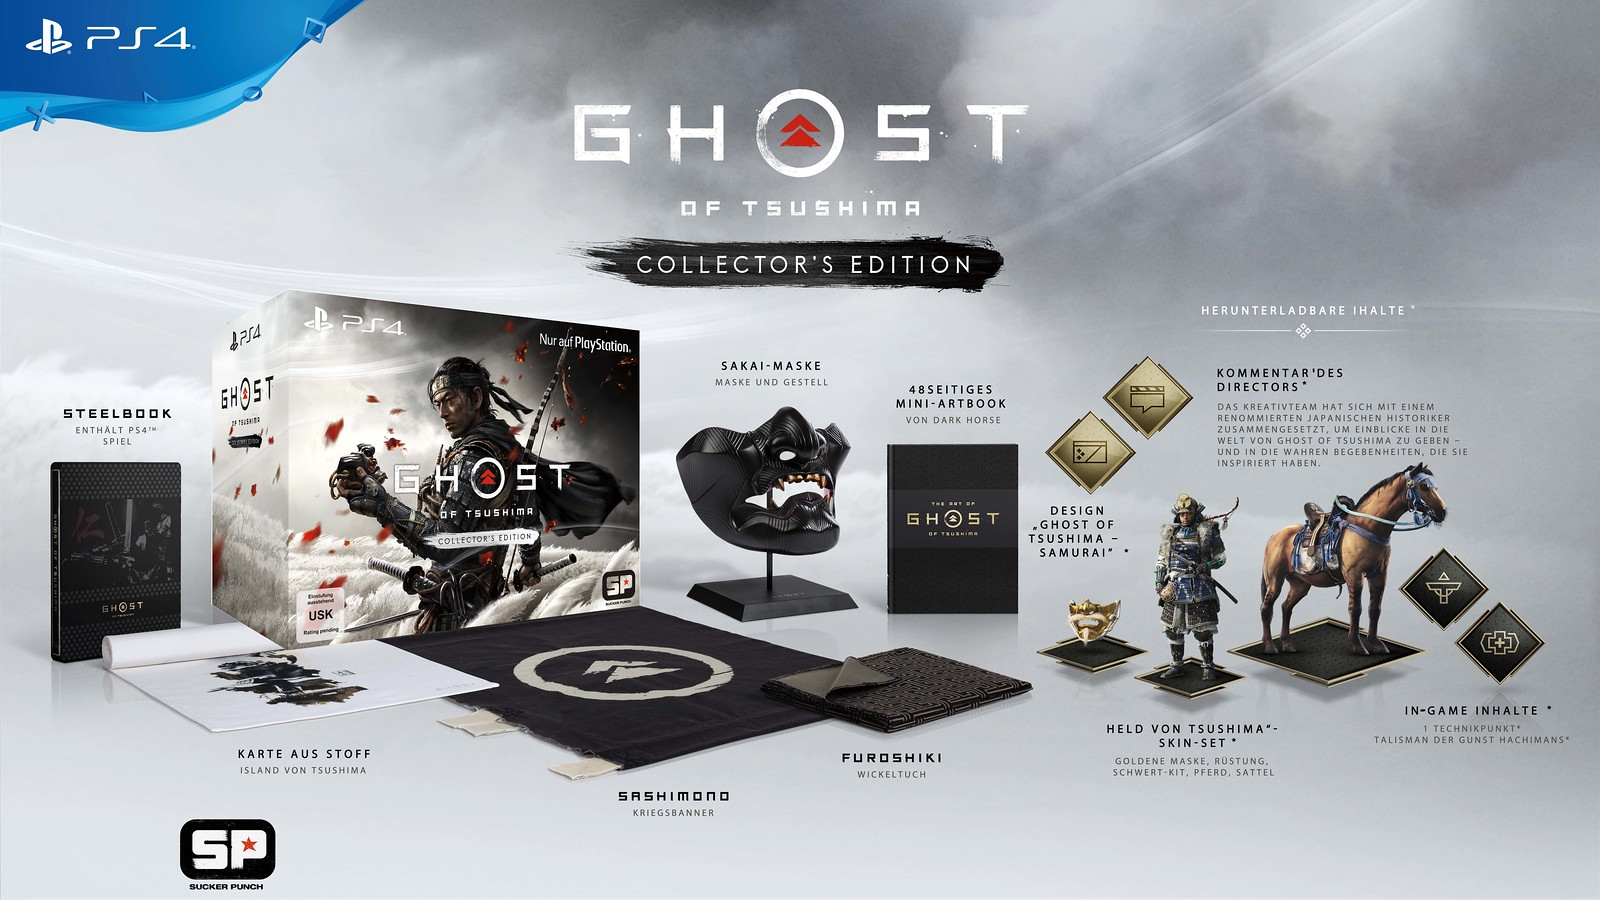 Ghost-of-Tsushima-Collectors-Edition-pc-games.jpg